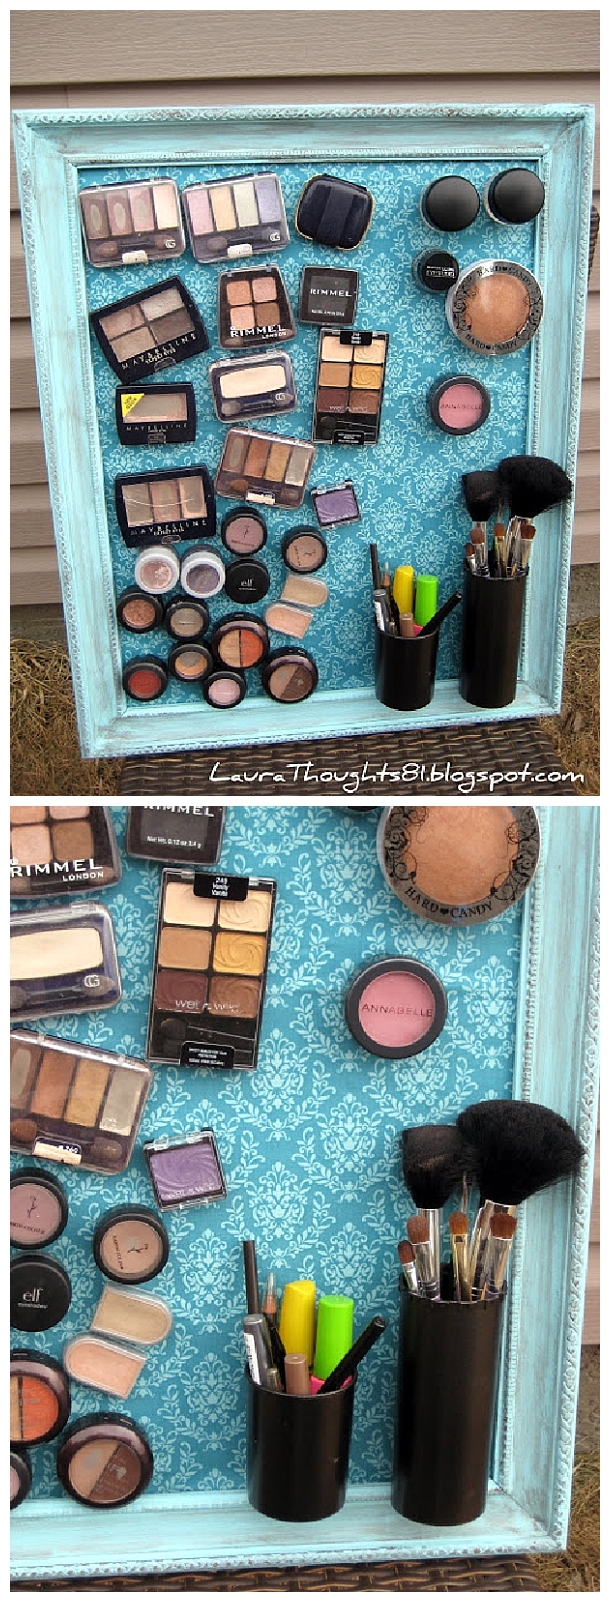 DIY Bathroom Organizer Ideas - DIY Magnetic Makeup and Beauty Tools Decorative Space Saving Organization Board via Laura Thoughts